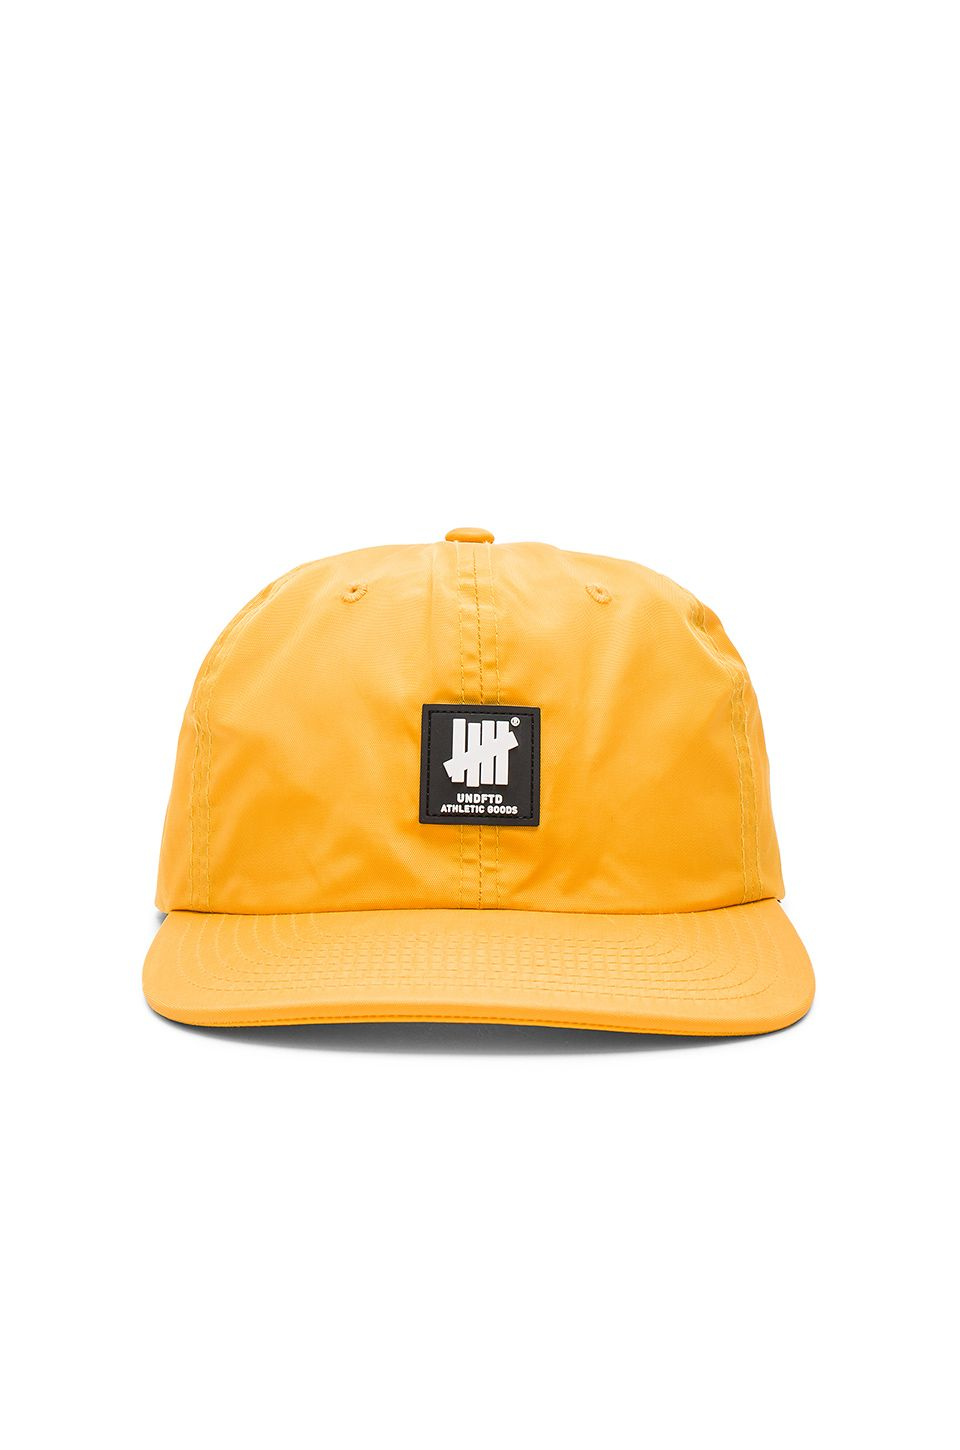 Undefeated Paddington Strapback in Yellow  b5c324bbc5fa